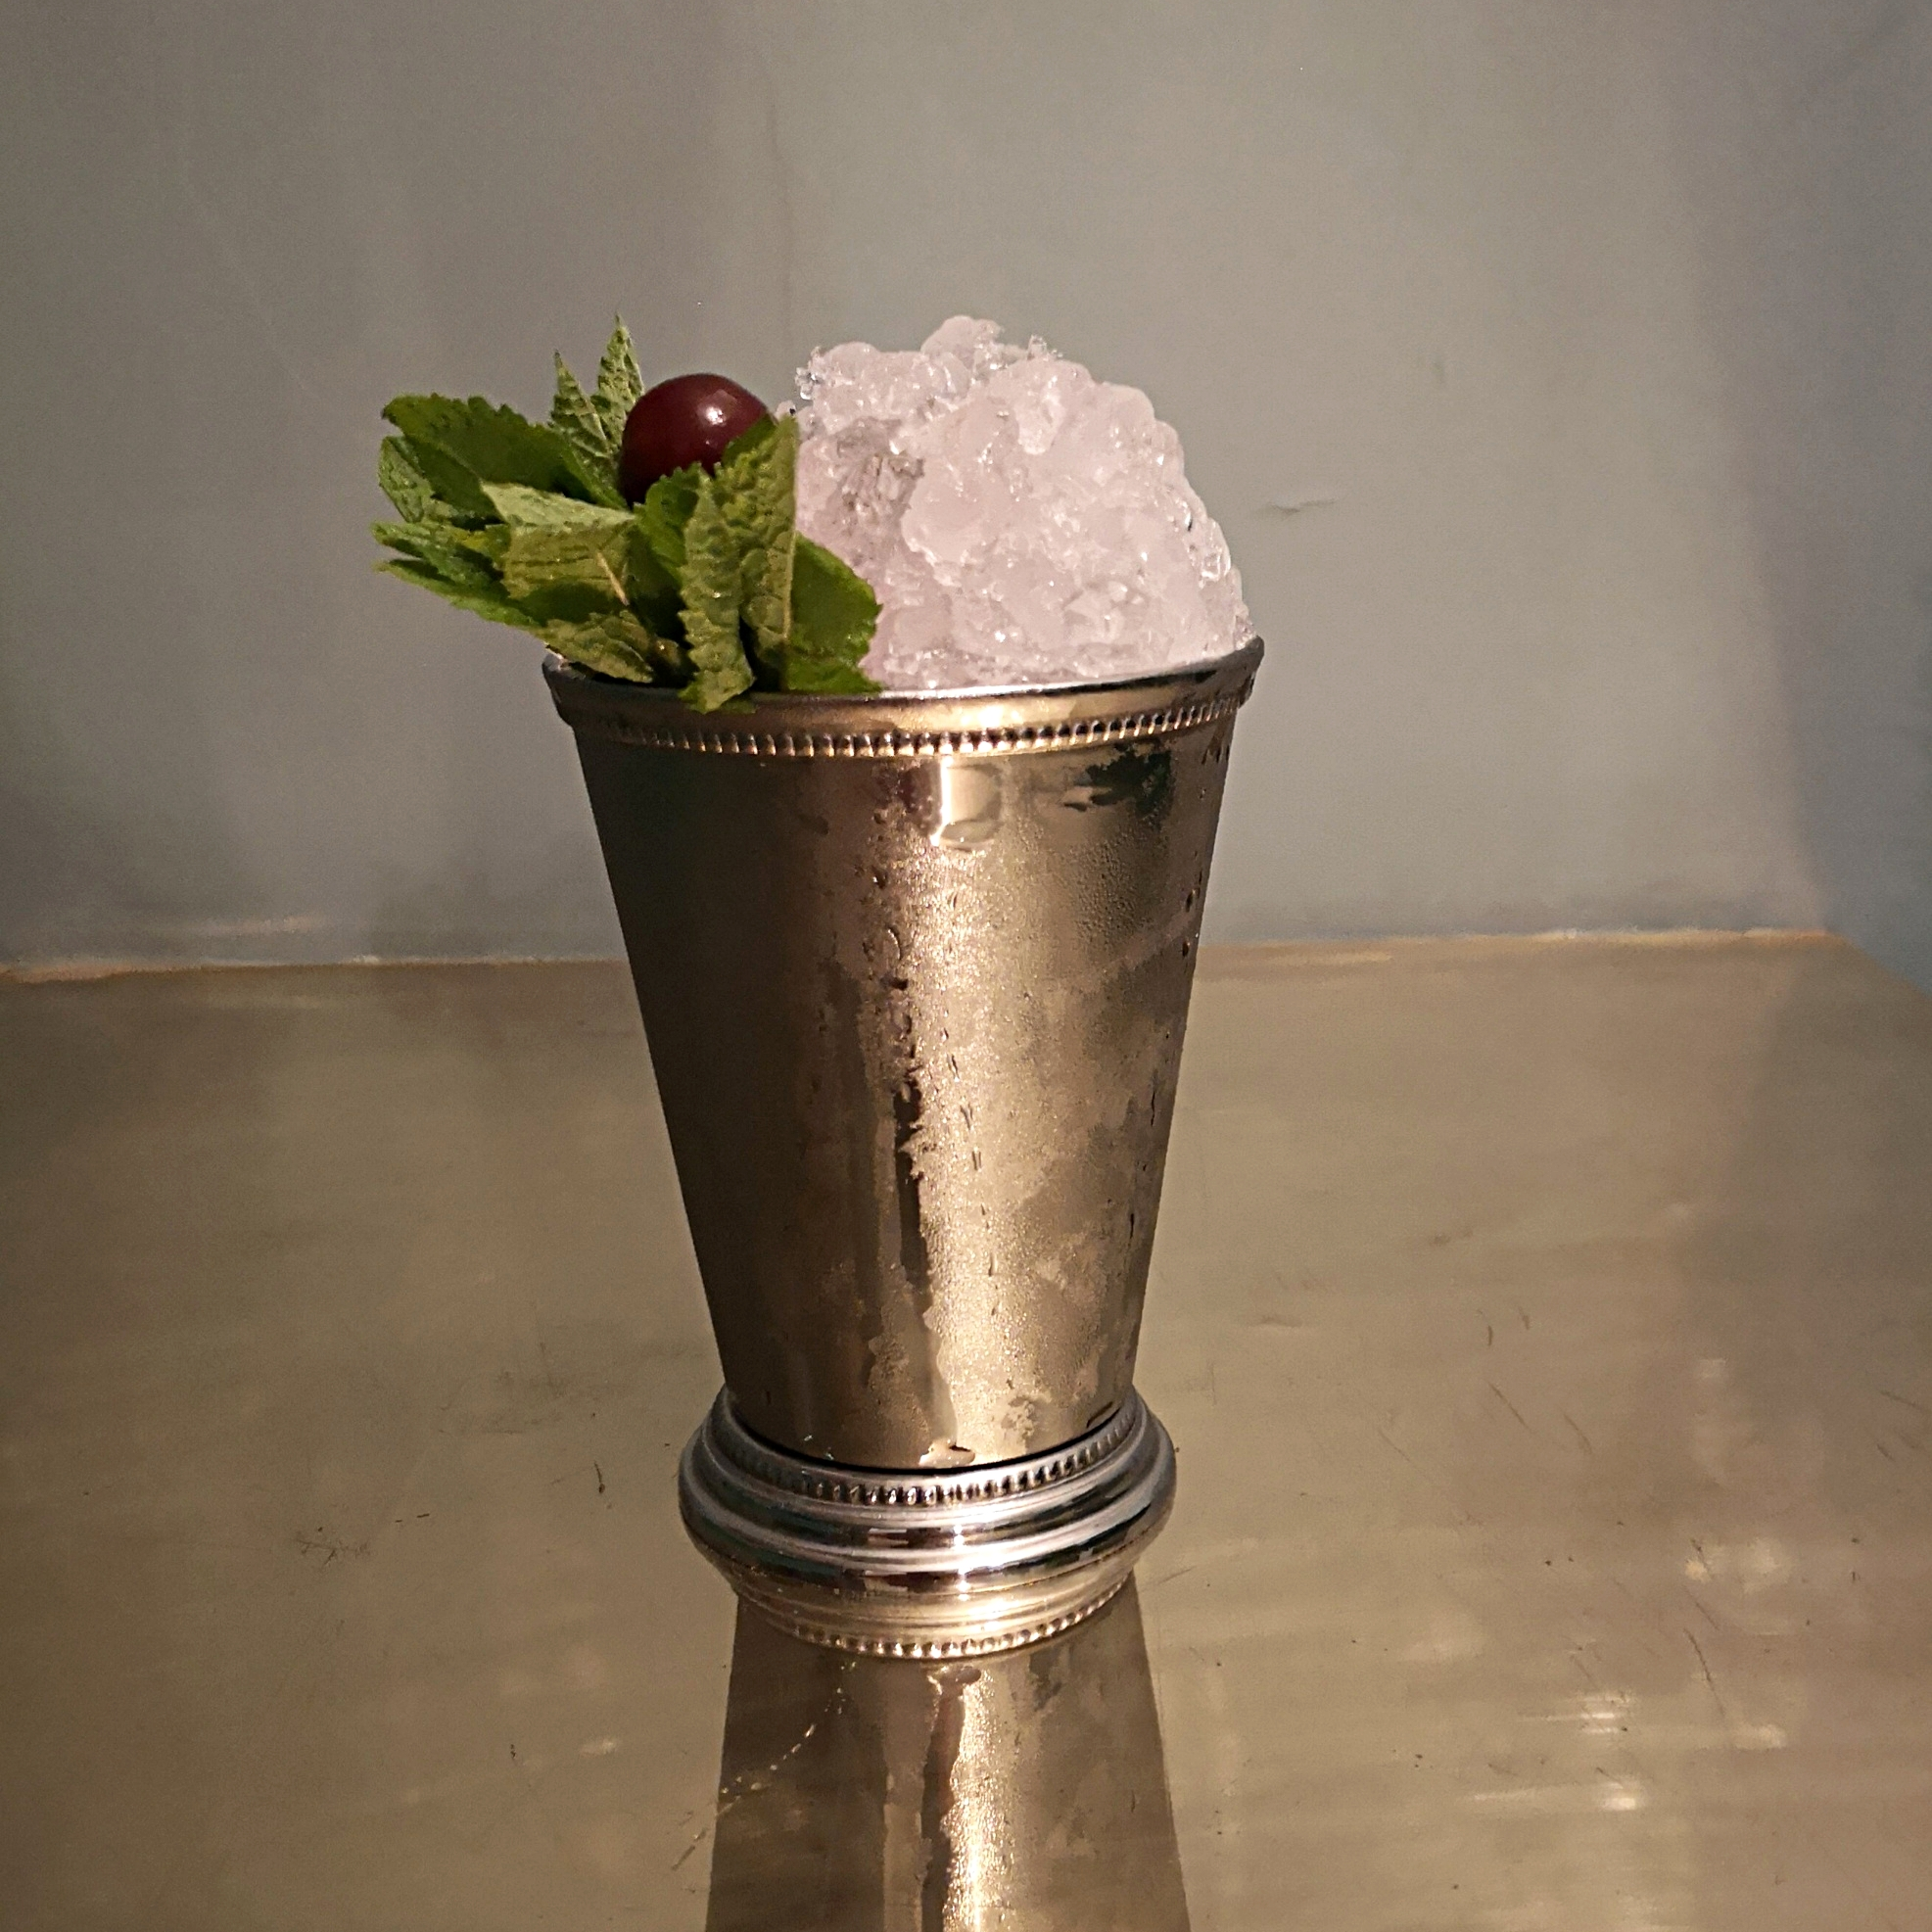 Hix Julep - Cherry, vanilla and whisky churned with crushed ice